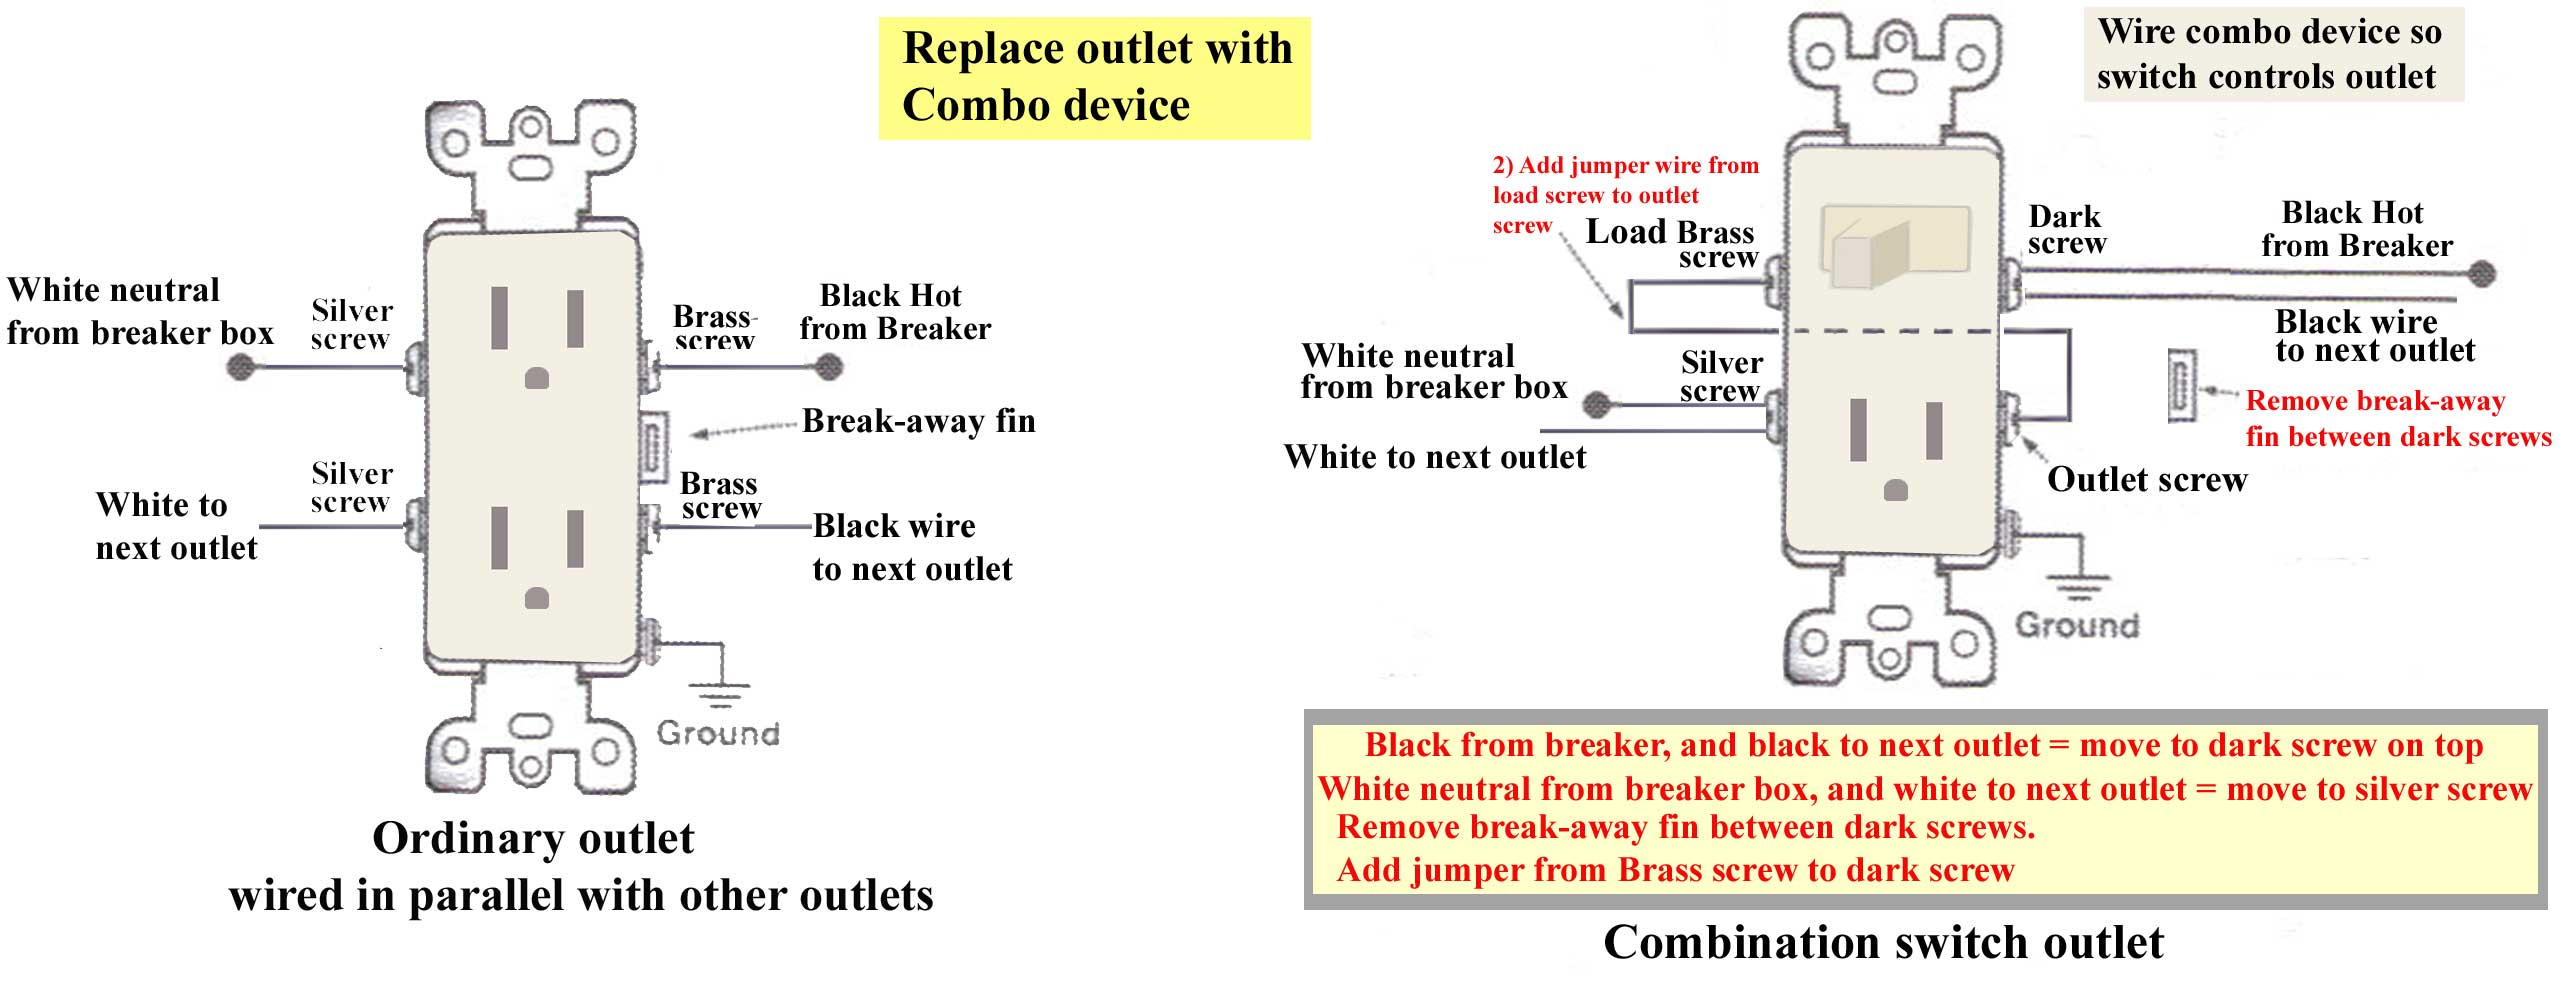 How To Wire Combination Switch Outlet - Switched Outlet Wiring Diagram